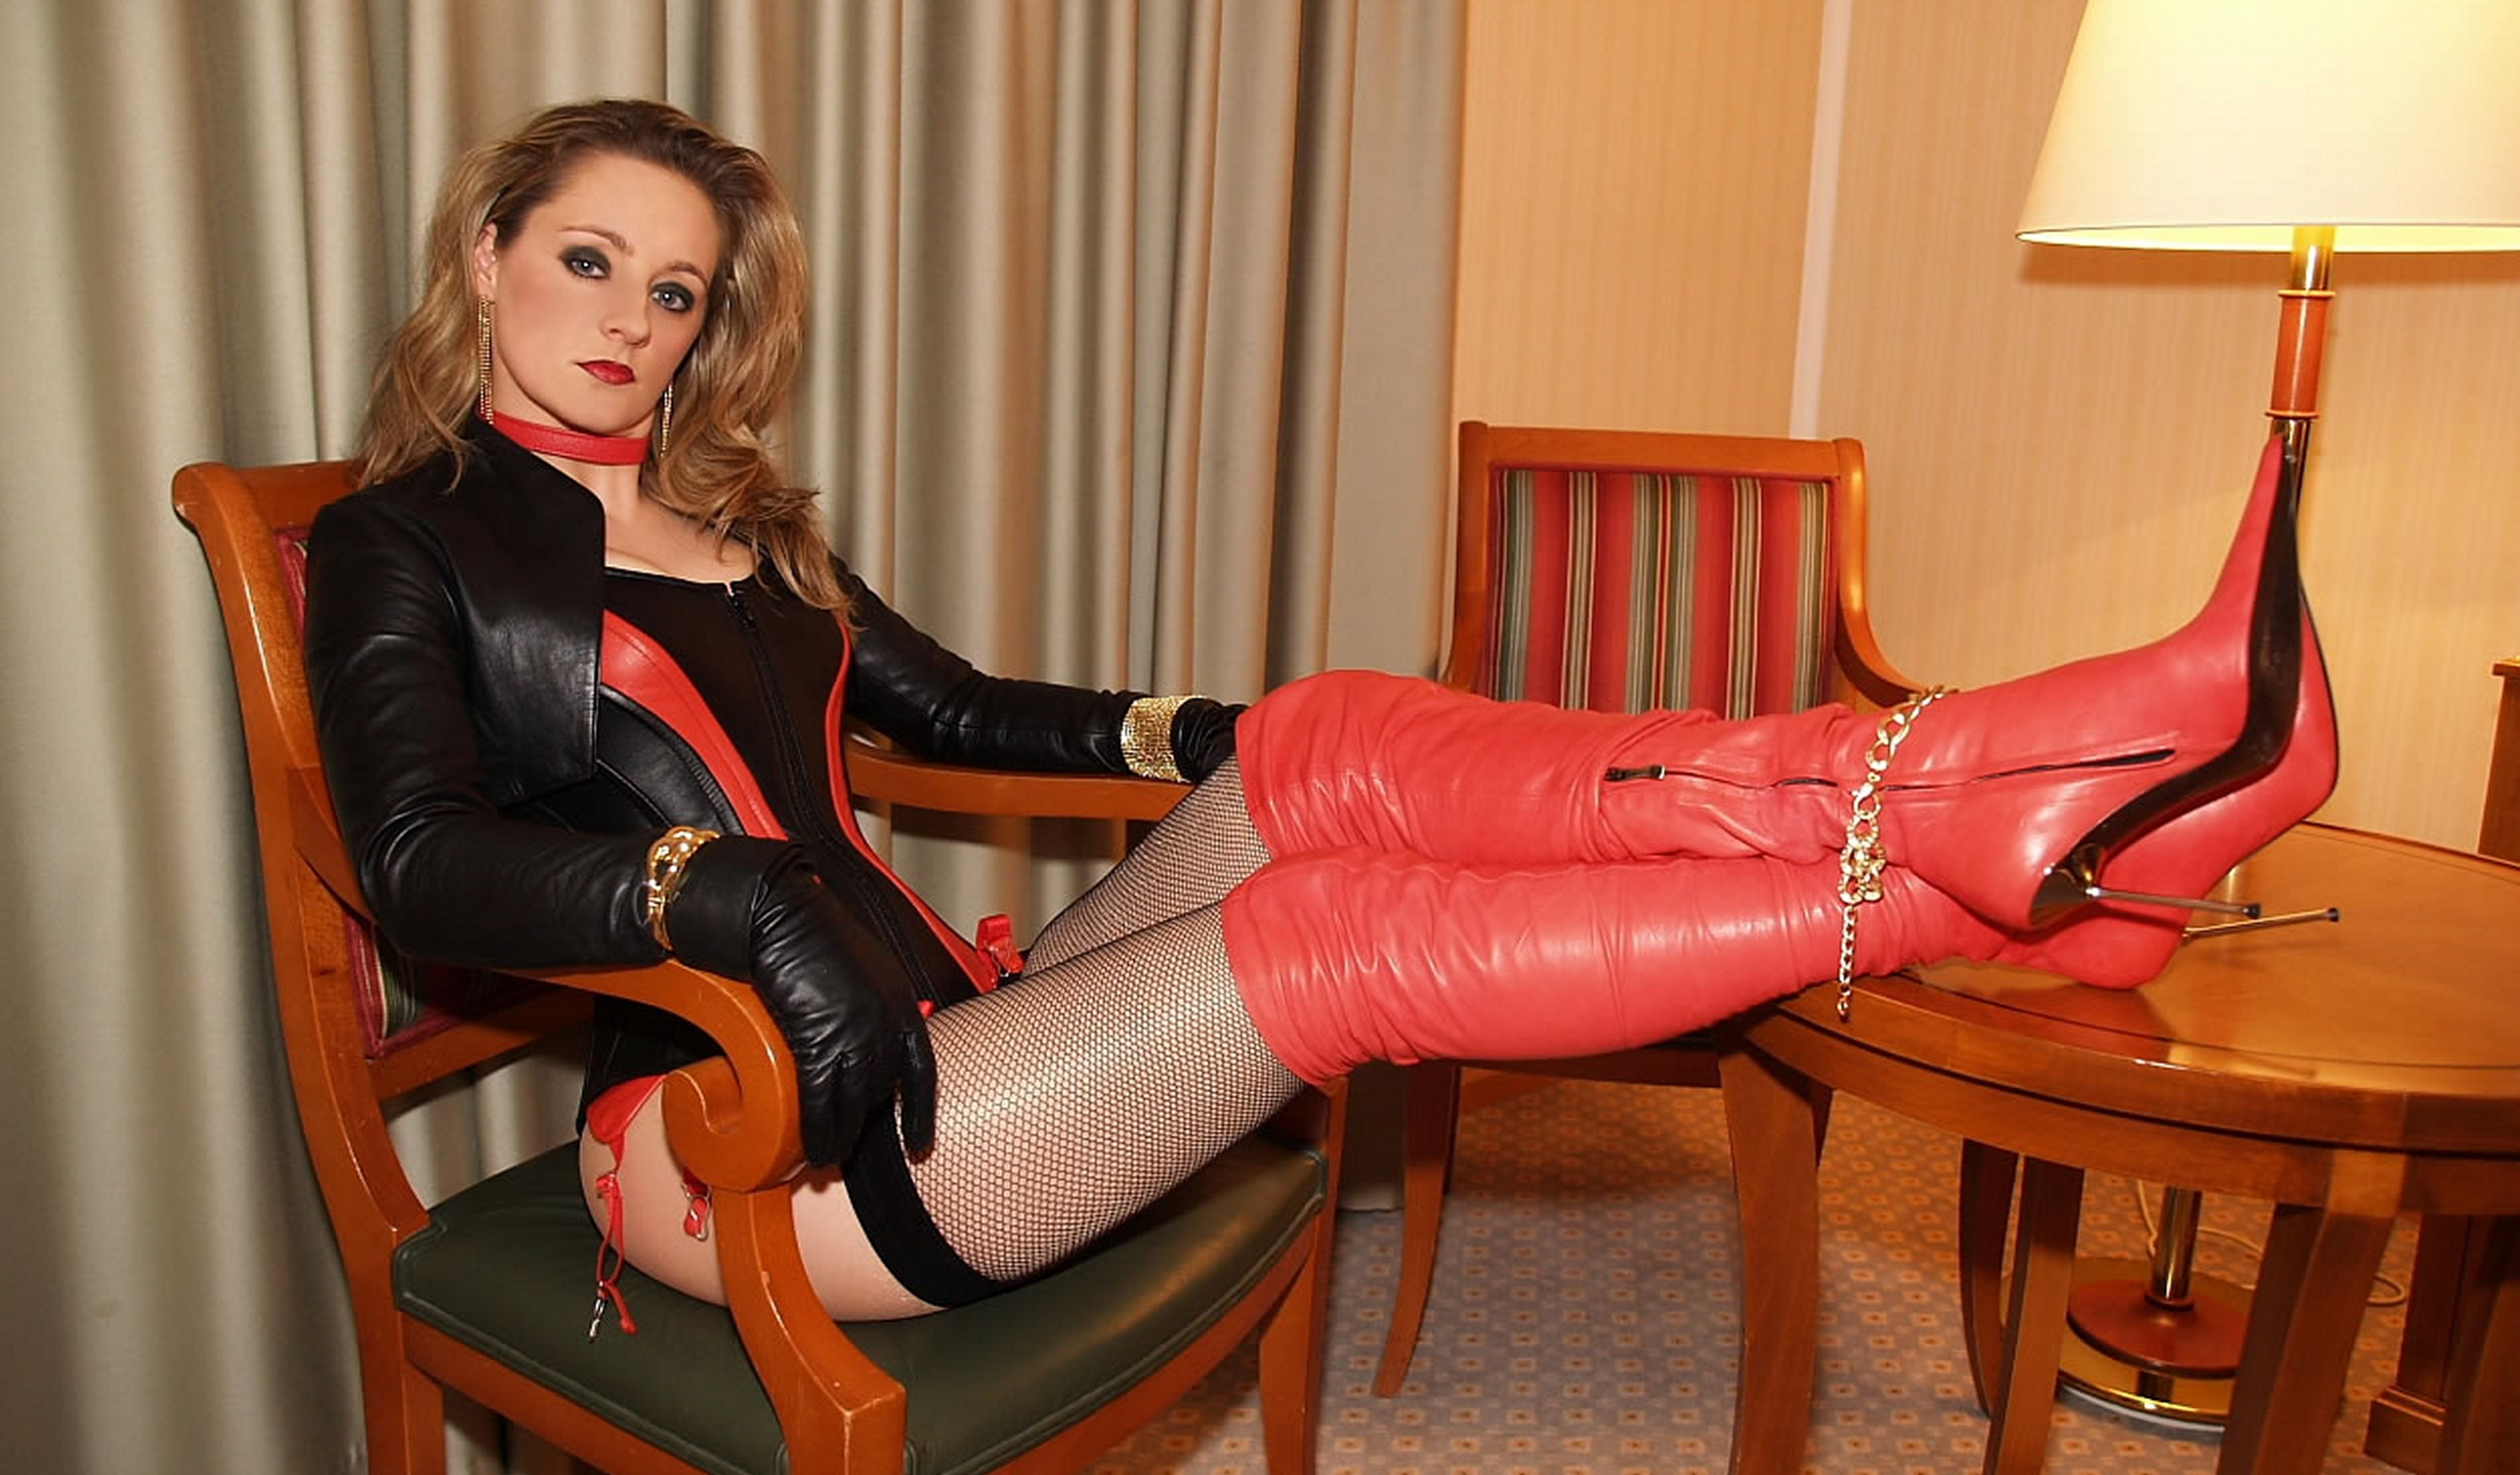 Are not girls in leather corsets speaking, opinion